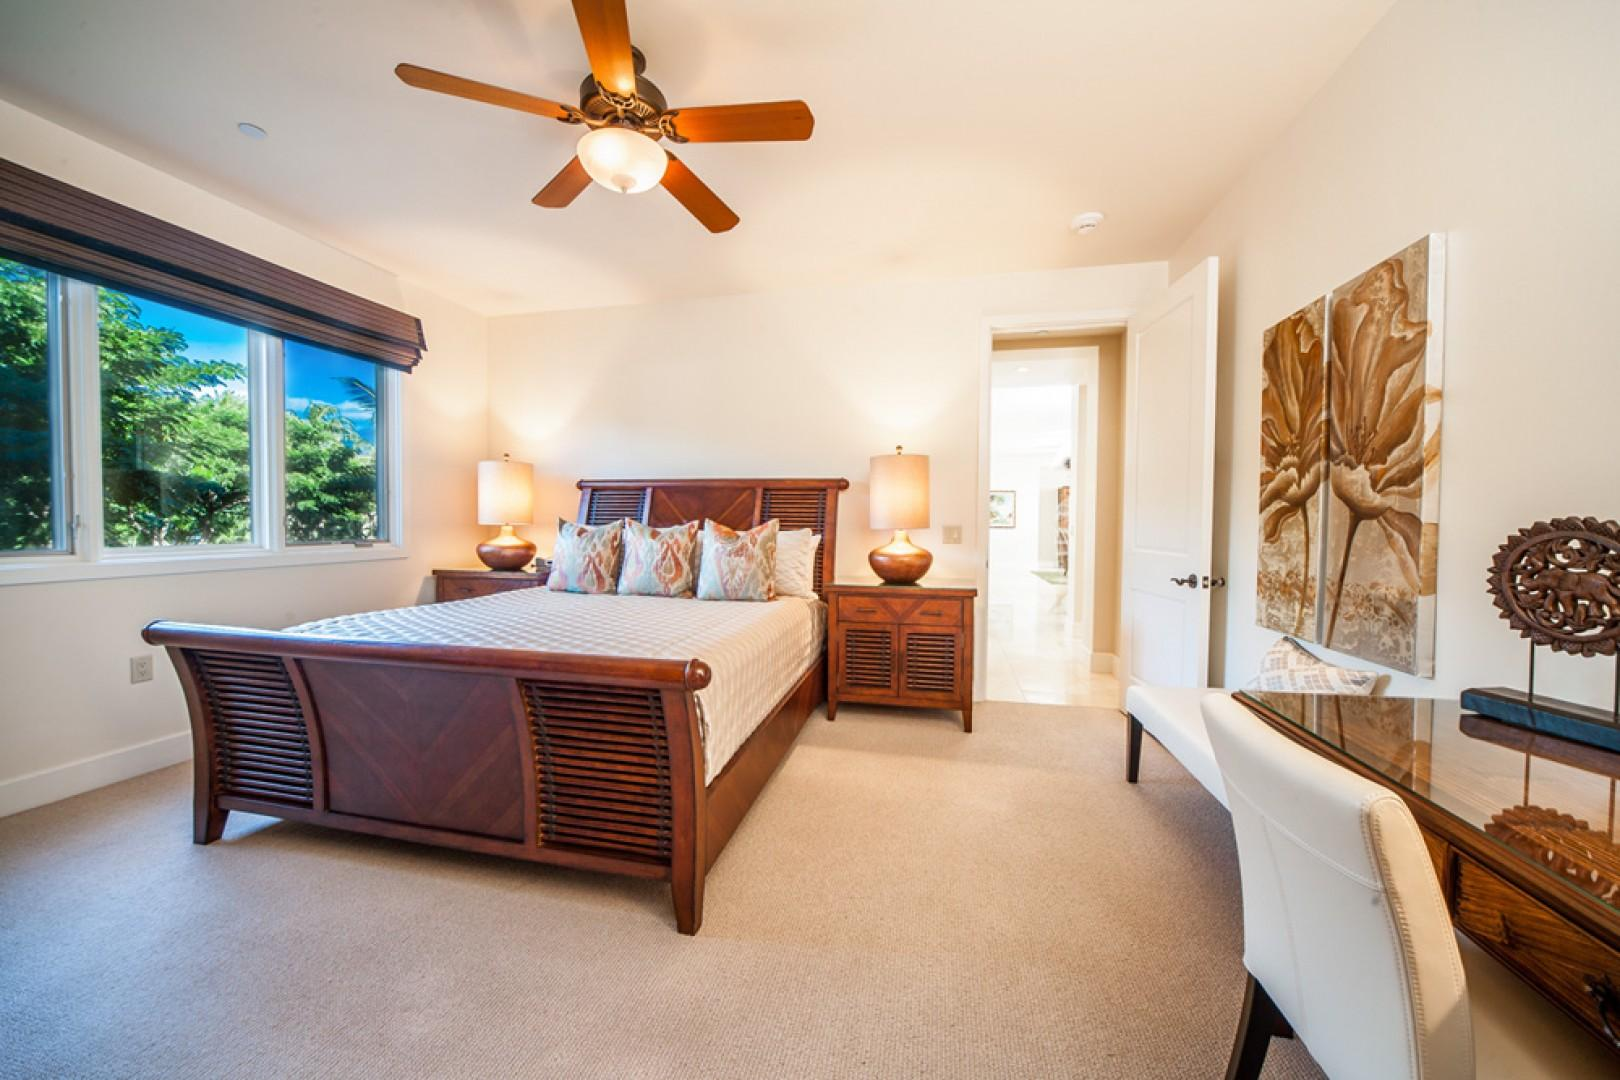 Blue Horizons K308 - Second Master Bedroom with King Bed, Private Tub/Shower Bath, Walk-In Closet, Desk, HDTV, HD Cable, CD/DVD